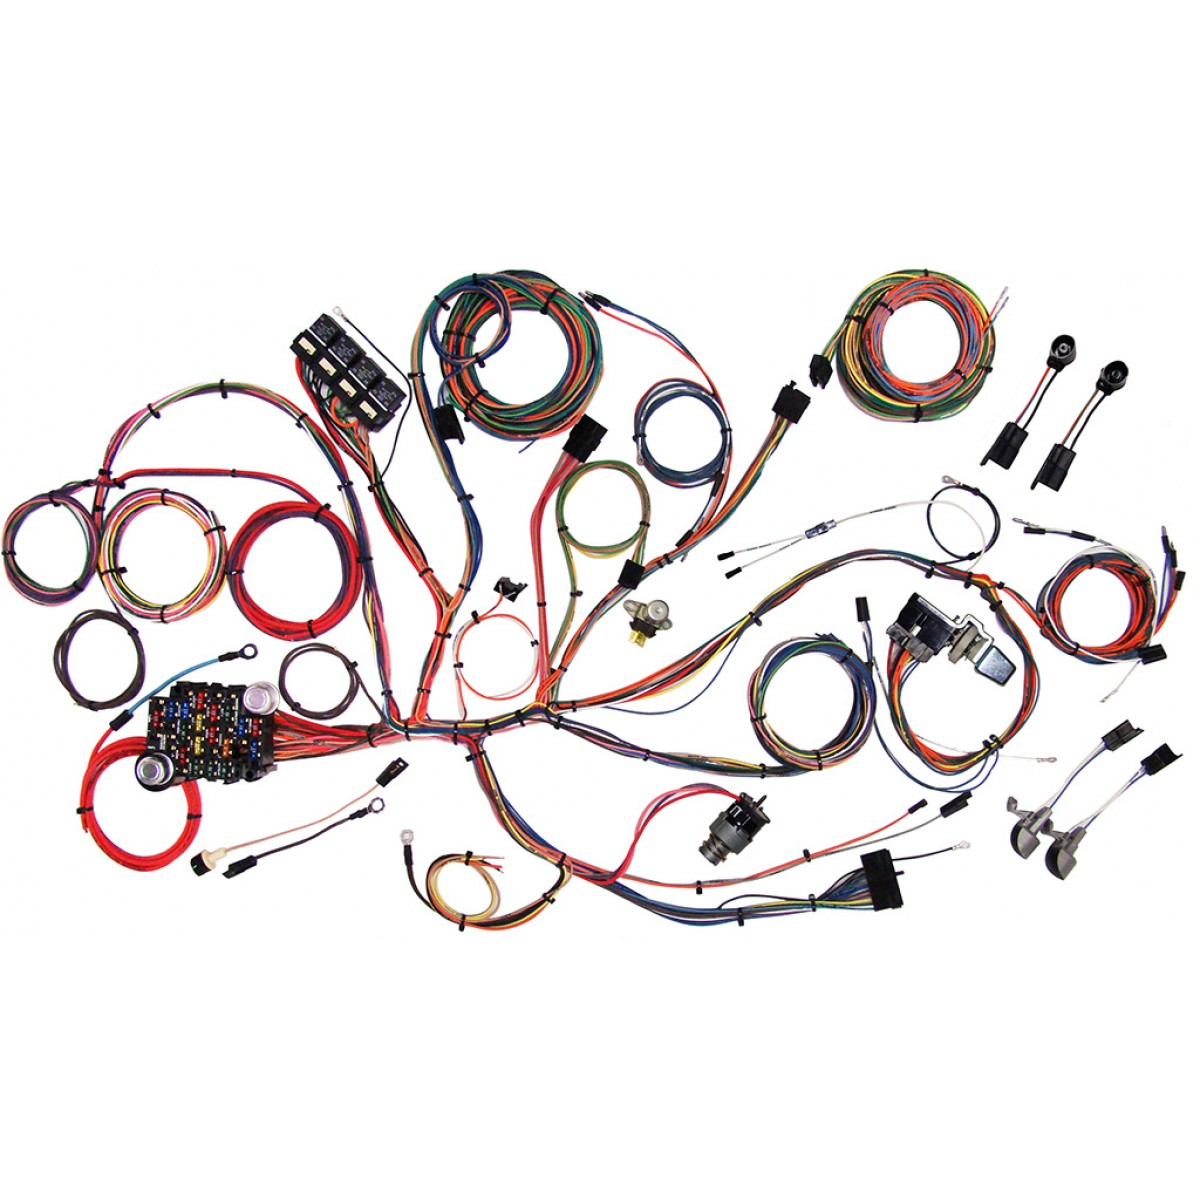 hight resolution of complete wiring harness kit 1964 1966 ford mustang part 510125